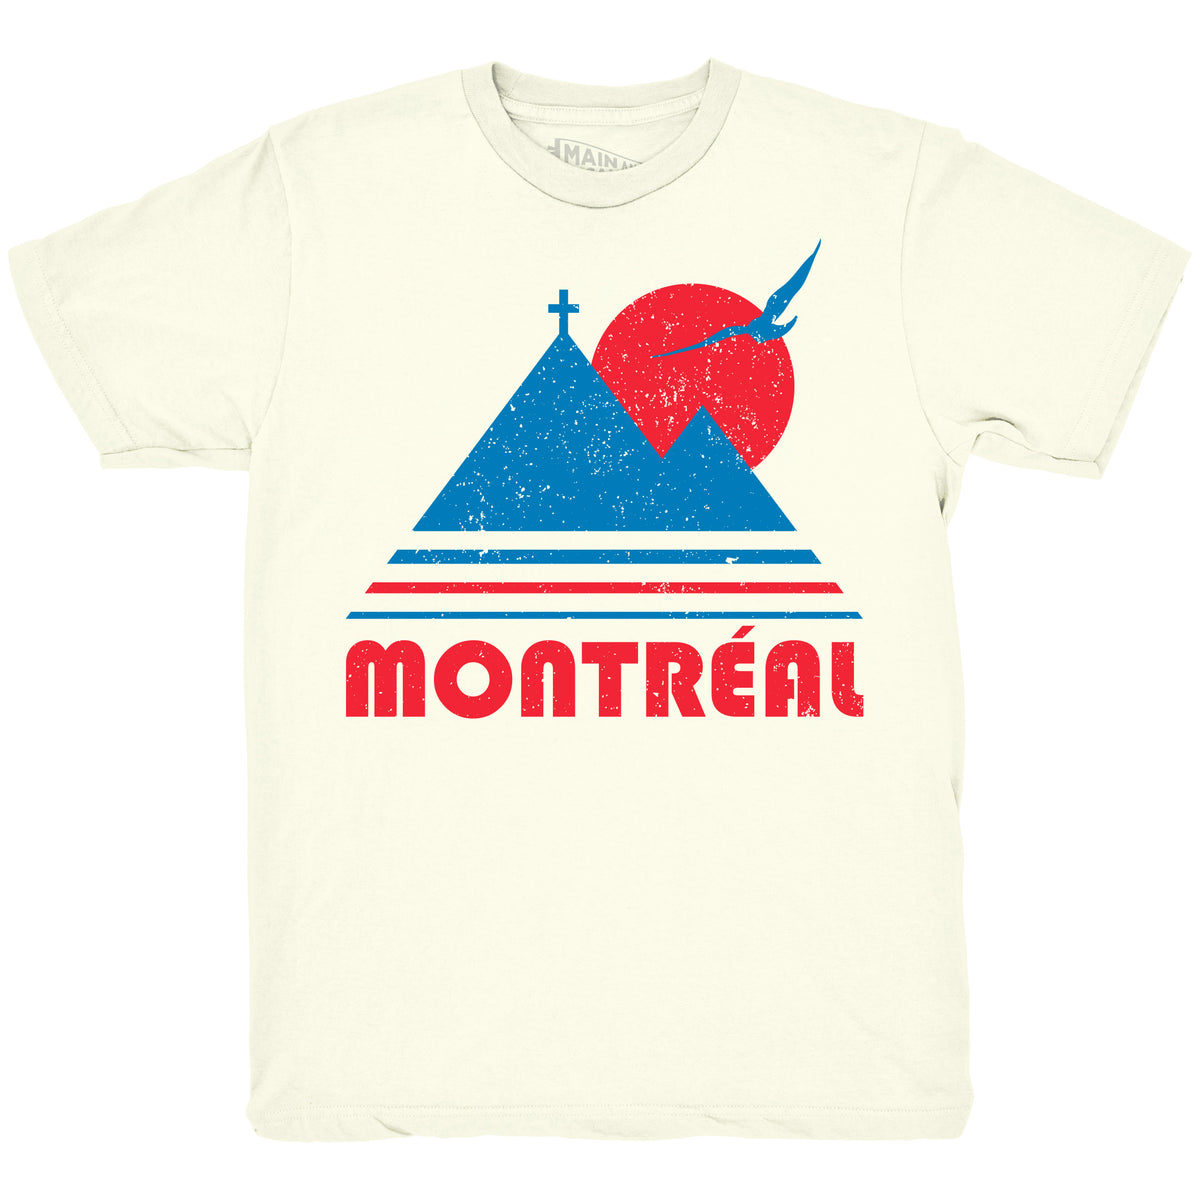 Montreal Vintage Tee - Main and Local